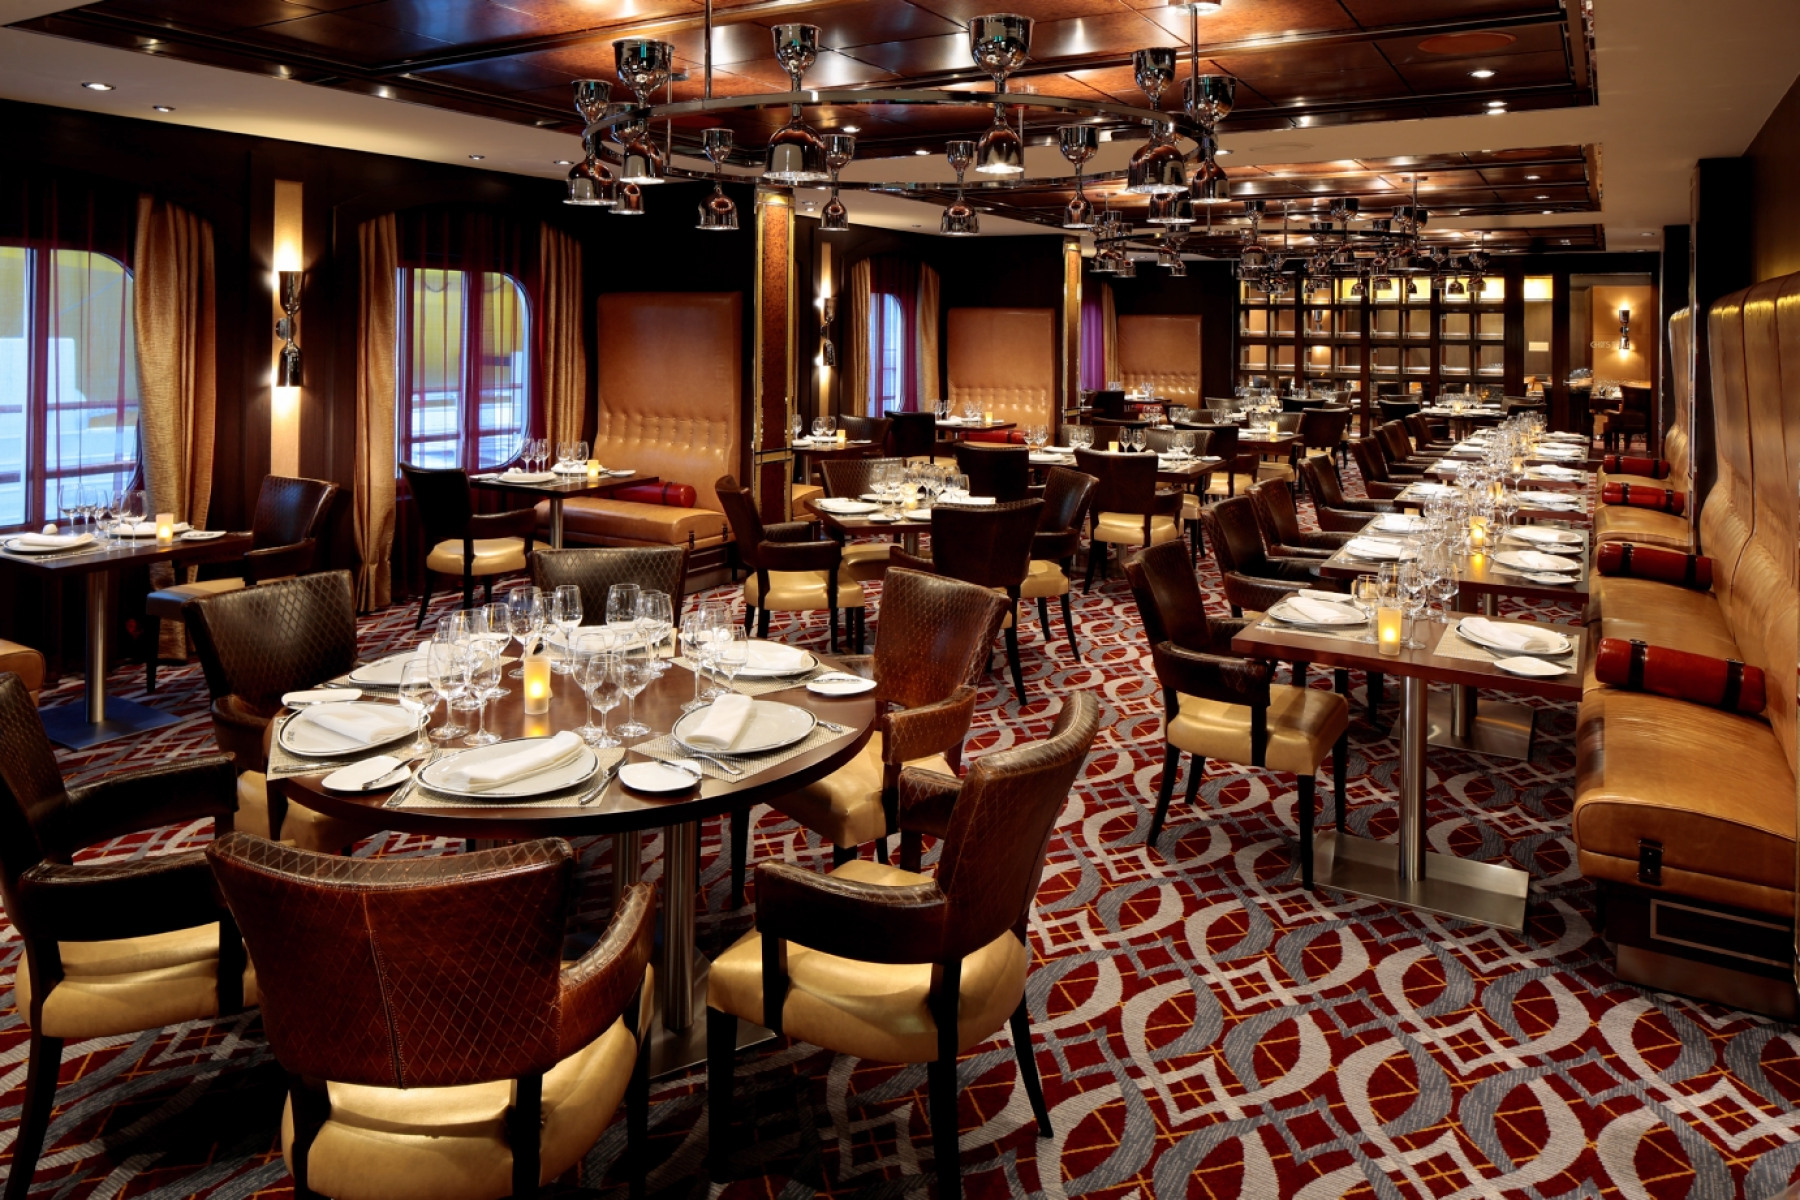 Royal Caribbean International Quantum of the Seas Interior Chops Grille.jpg